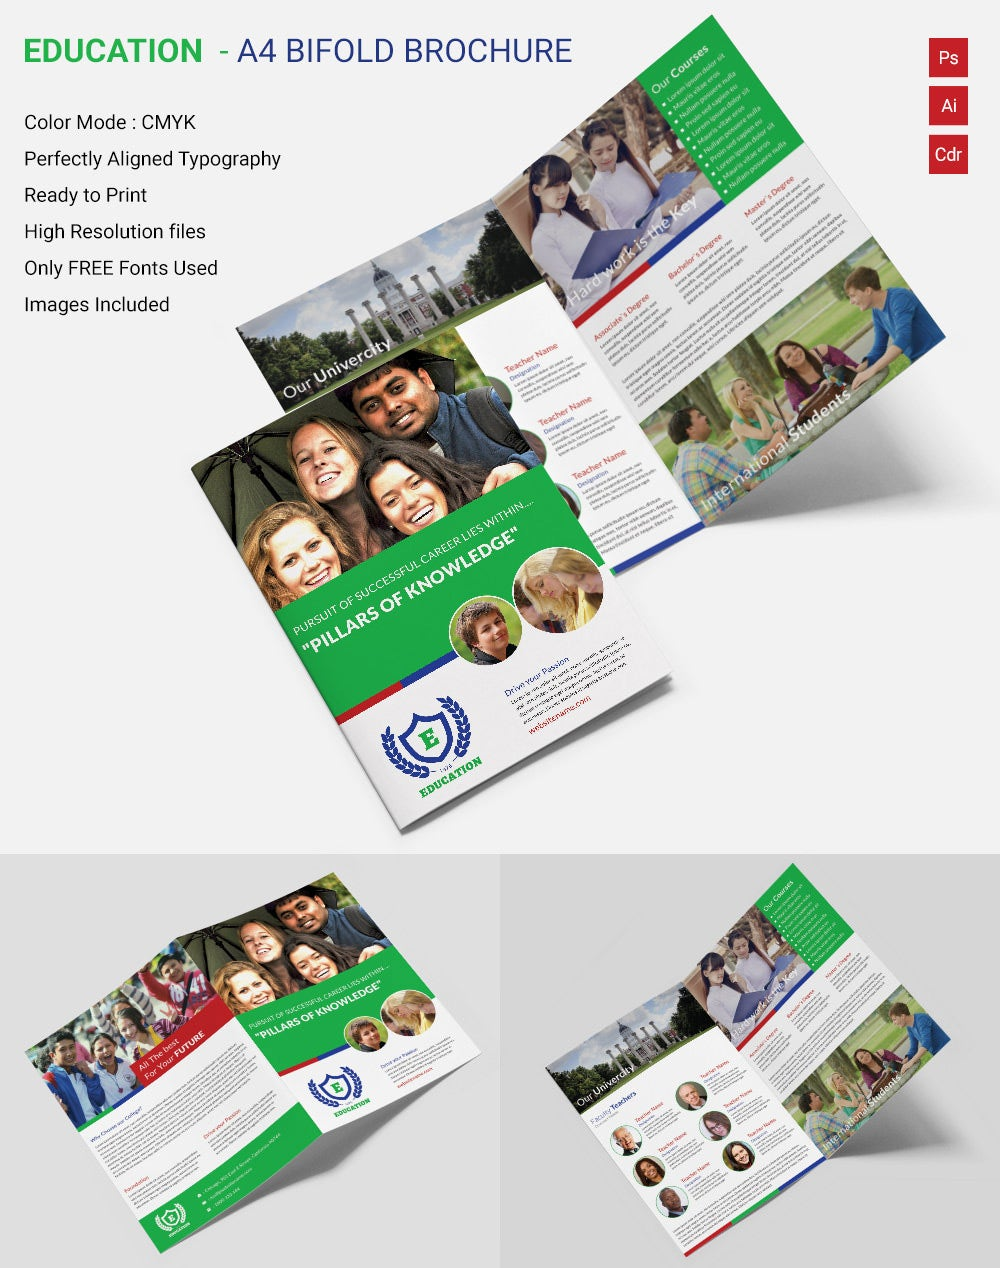 high school brochure template - education brochure template 43 free psd eps indesign